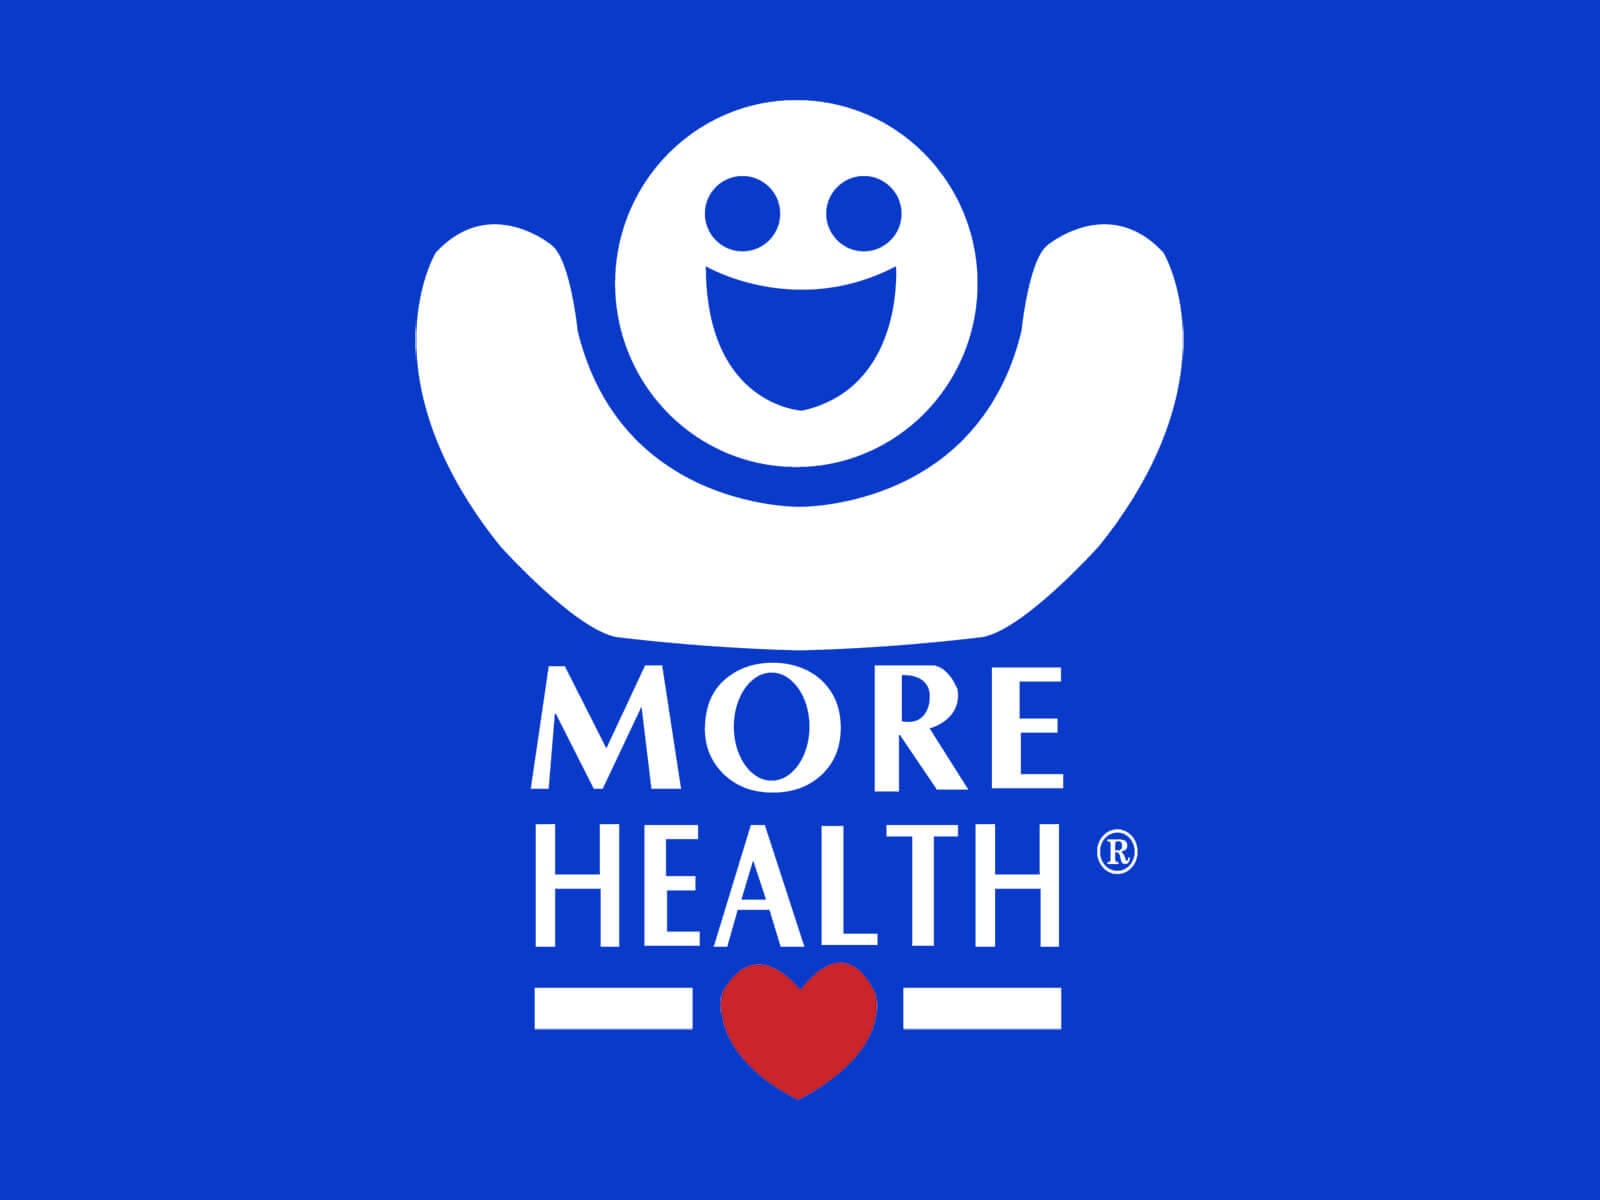 January 2018 Newsletter - A Word from MORE HEALTH